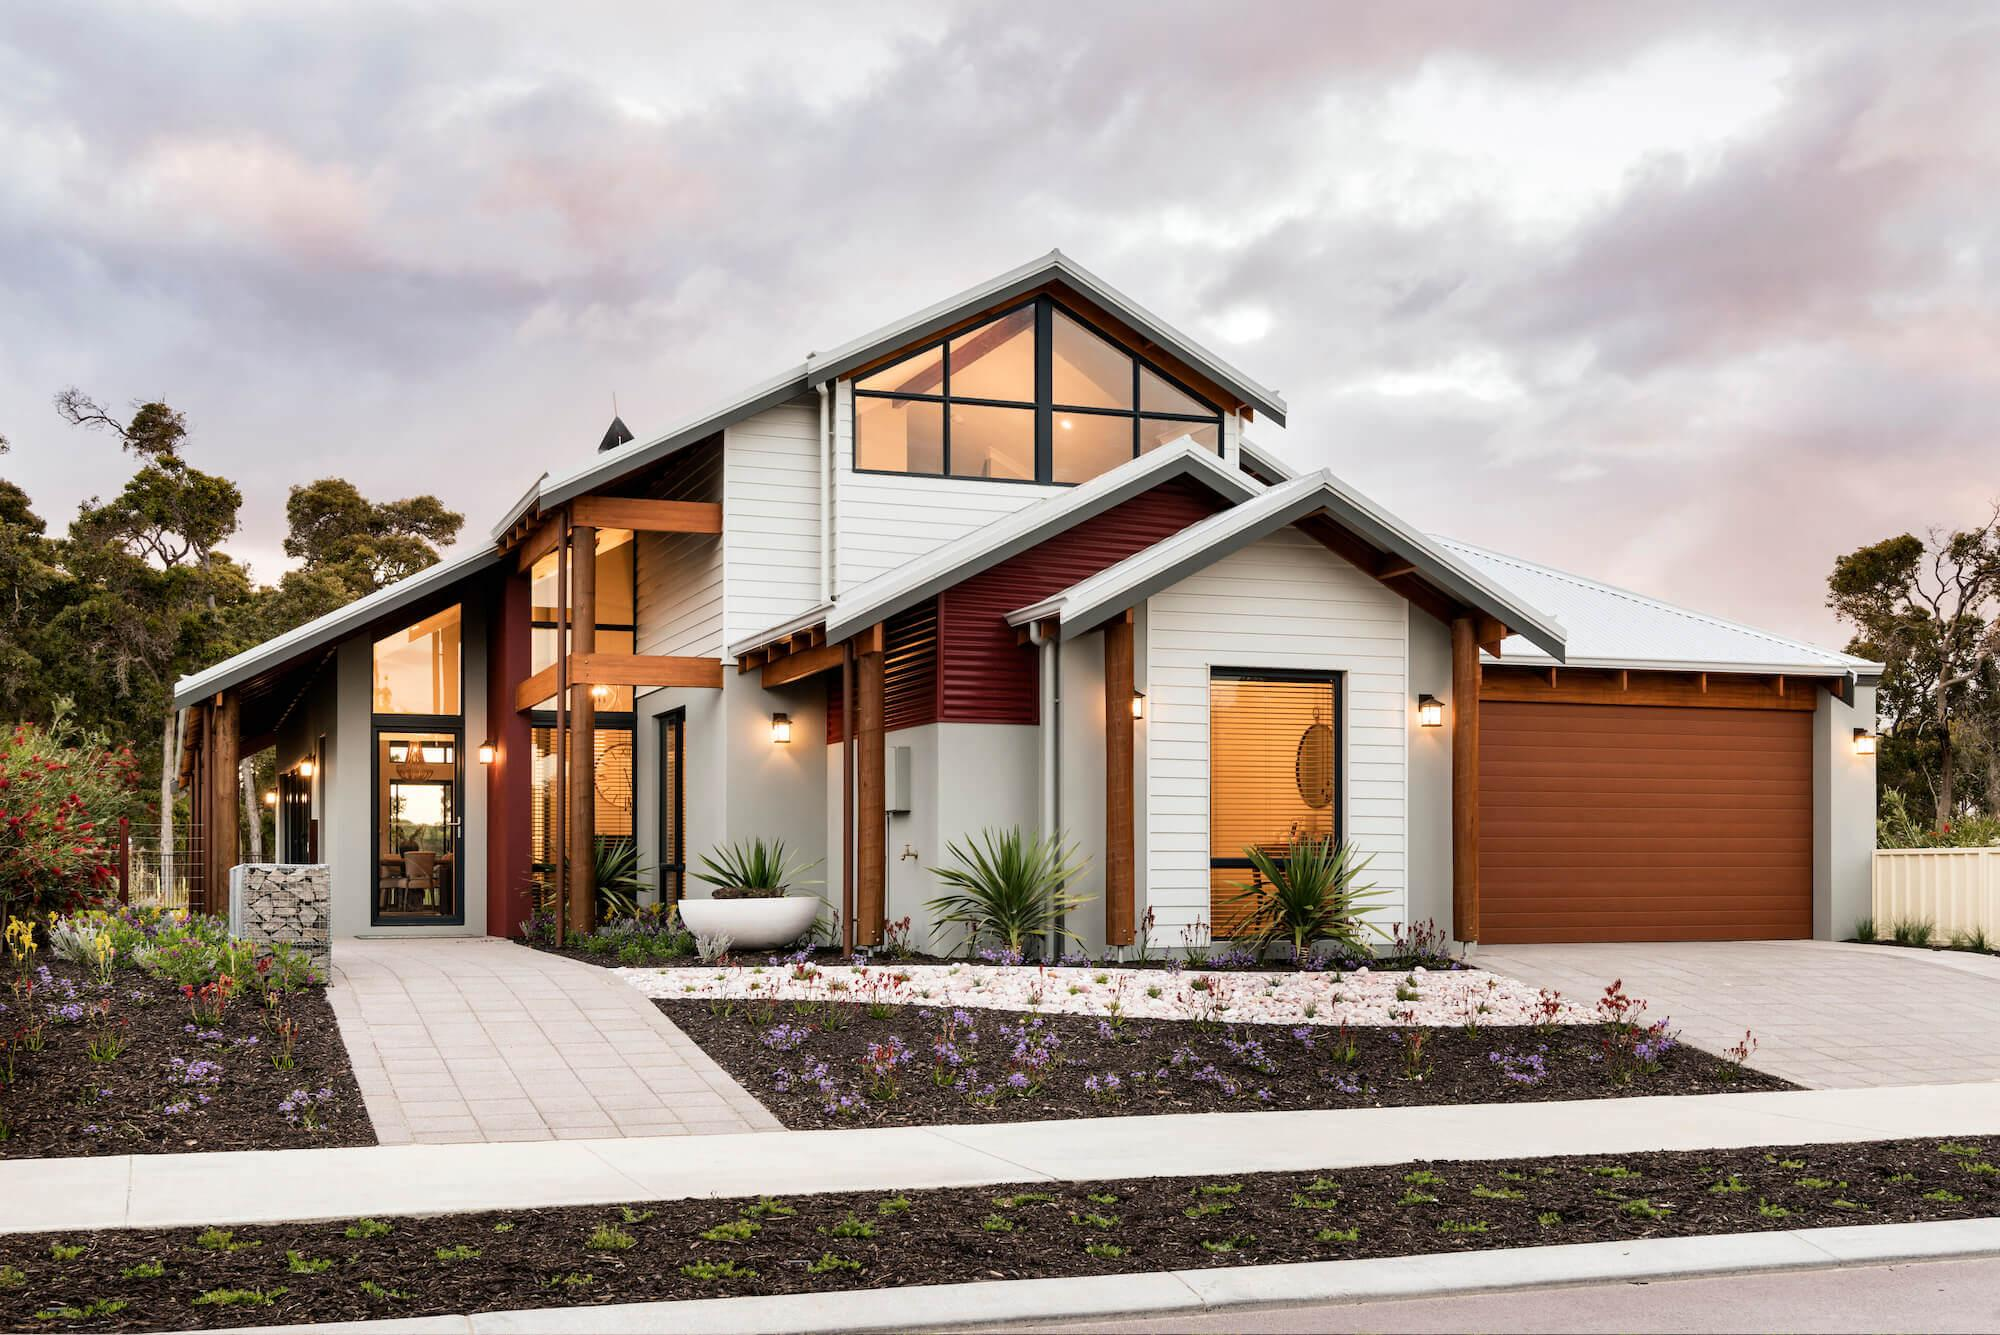 Home Designs The Rural Building Co